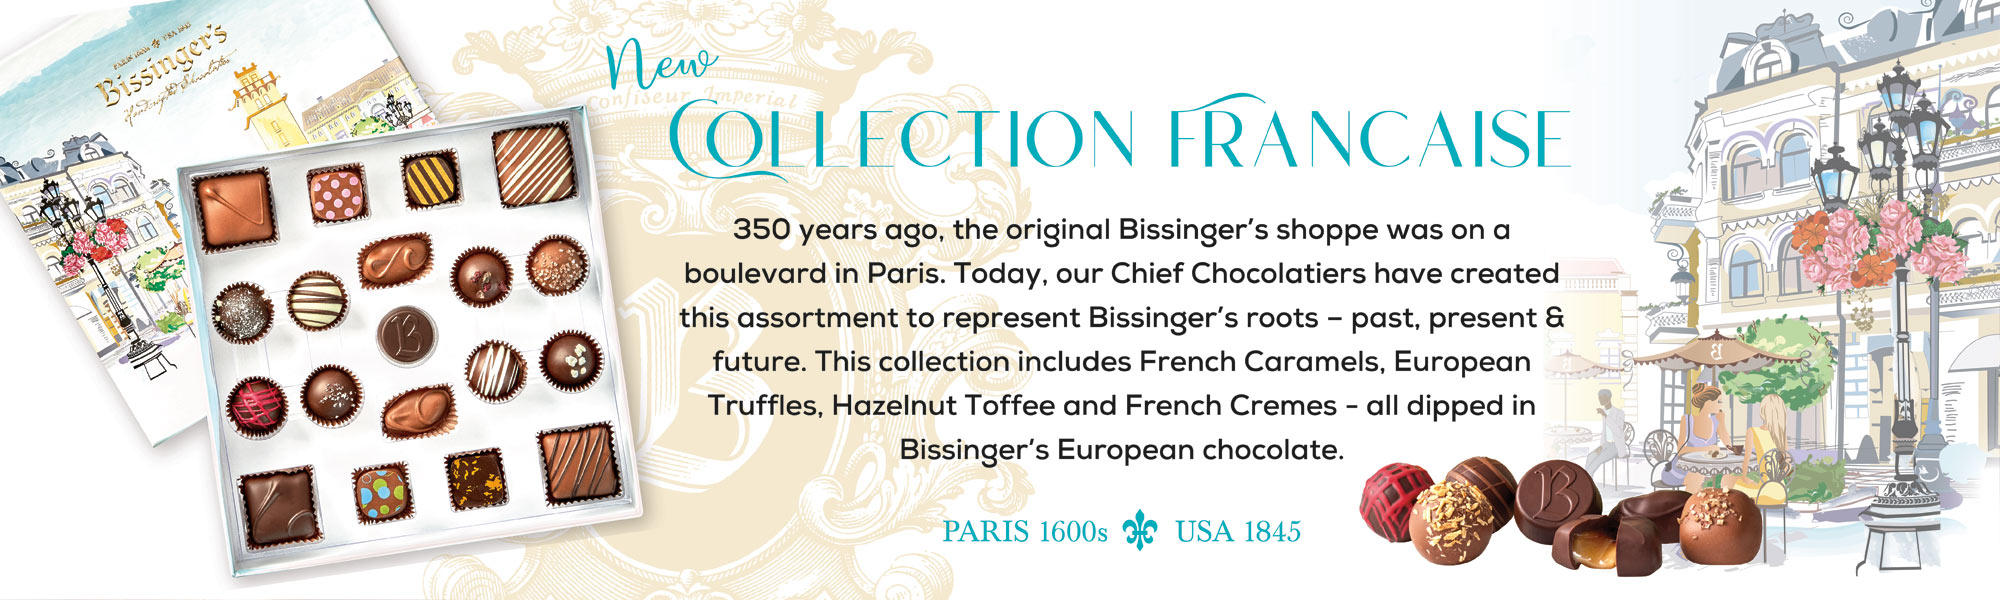 Bissinger's Collection Francaise